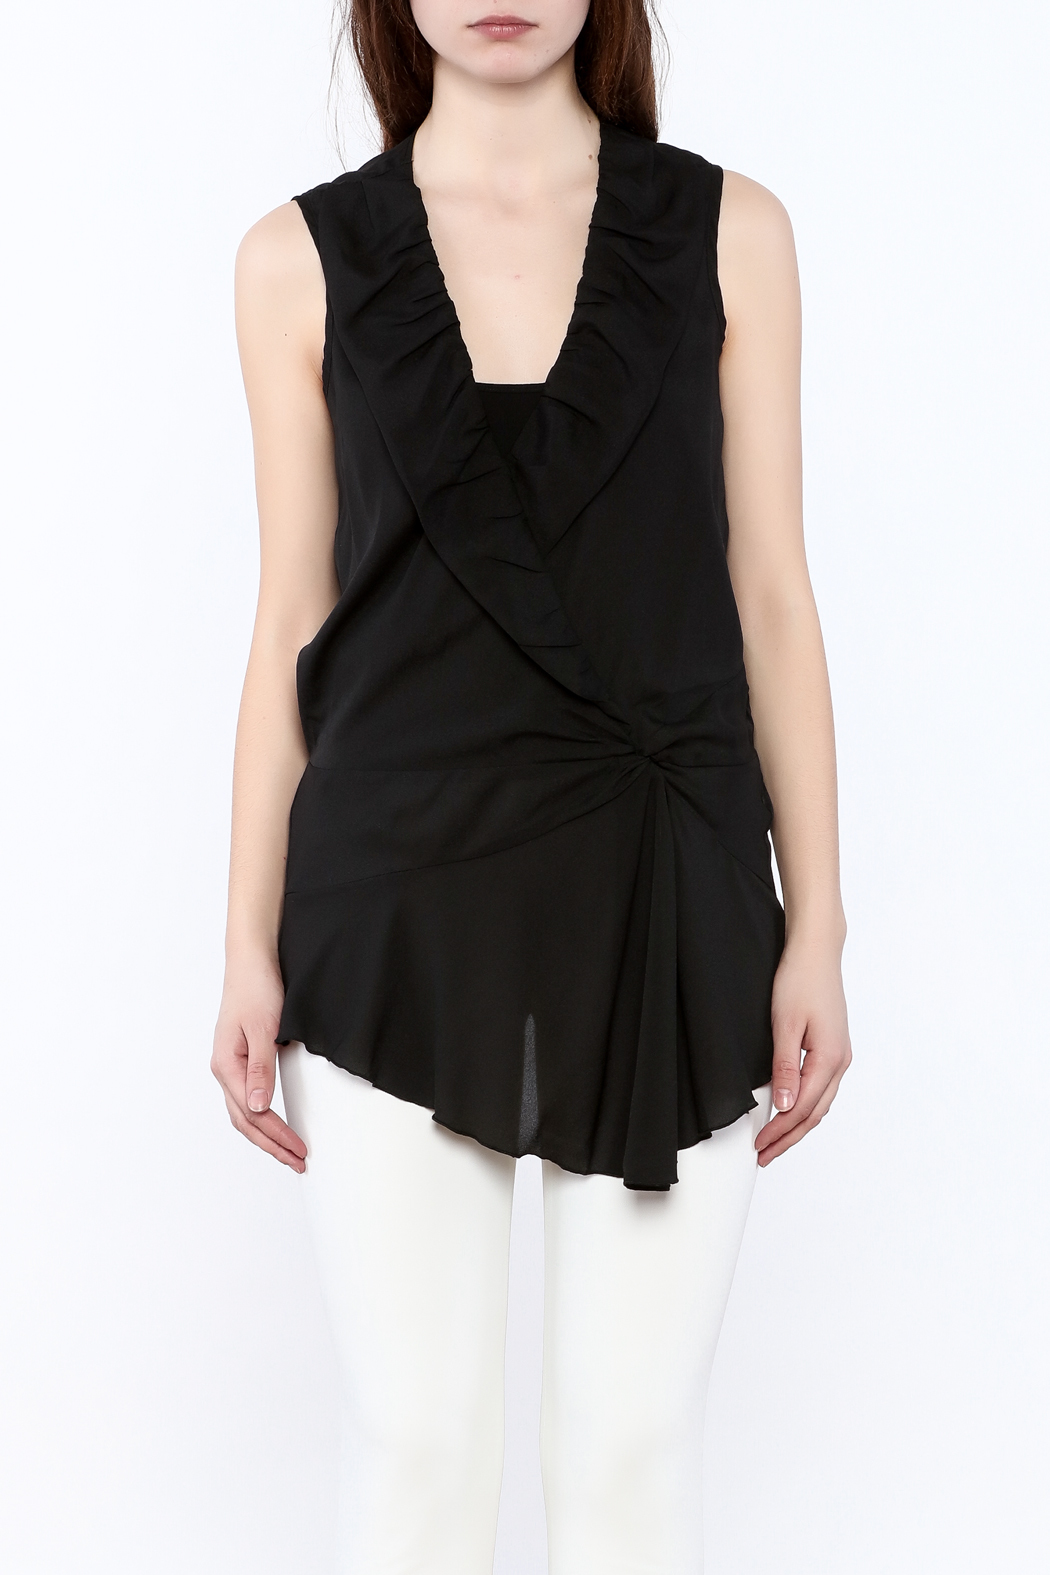 Esley Black Surplice Tunic Top - Side Cropped Image